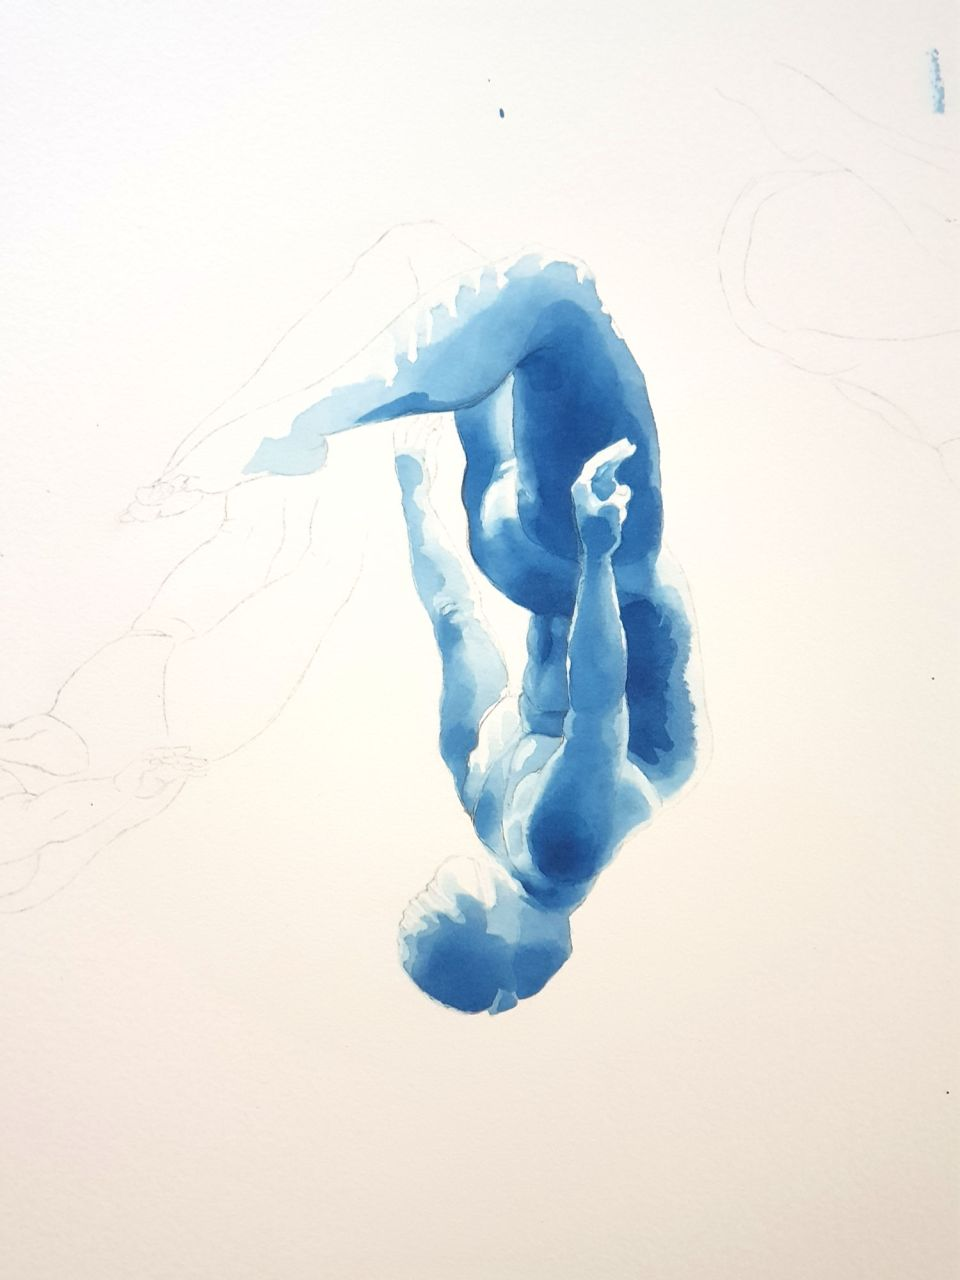 Pencil outlines and underpainting in Prussian blue